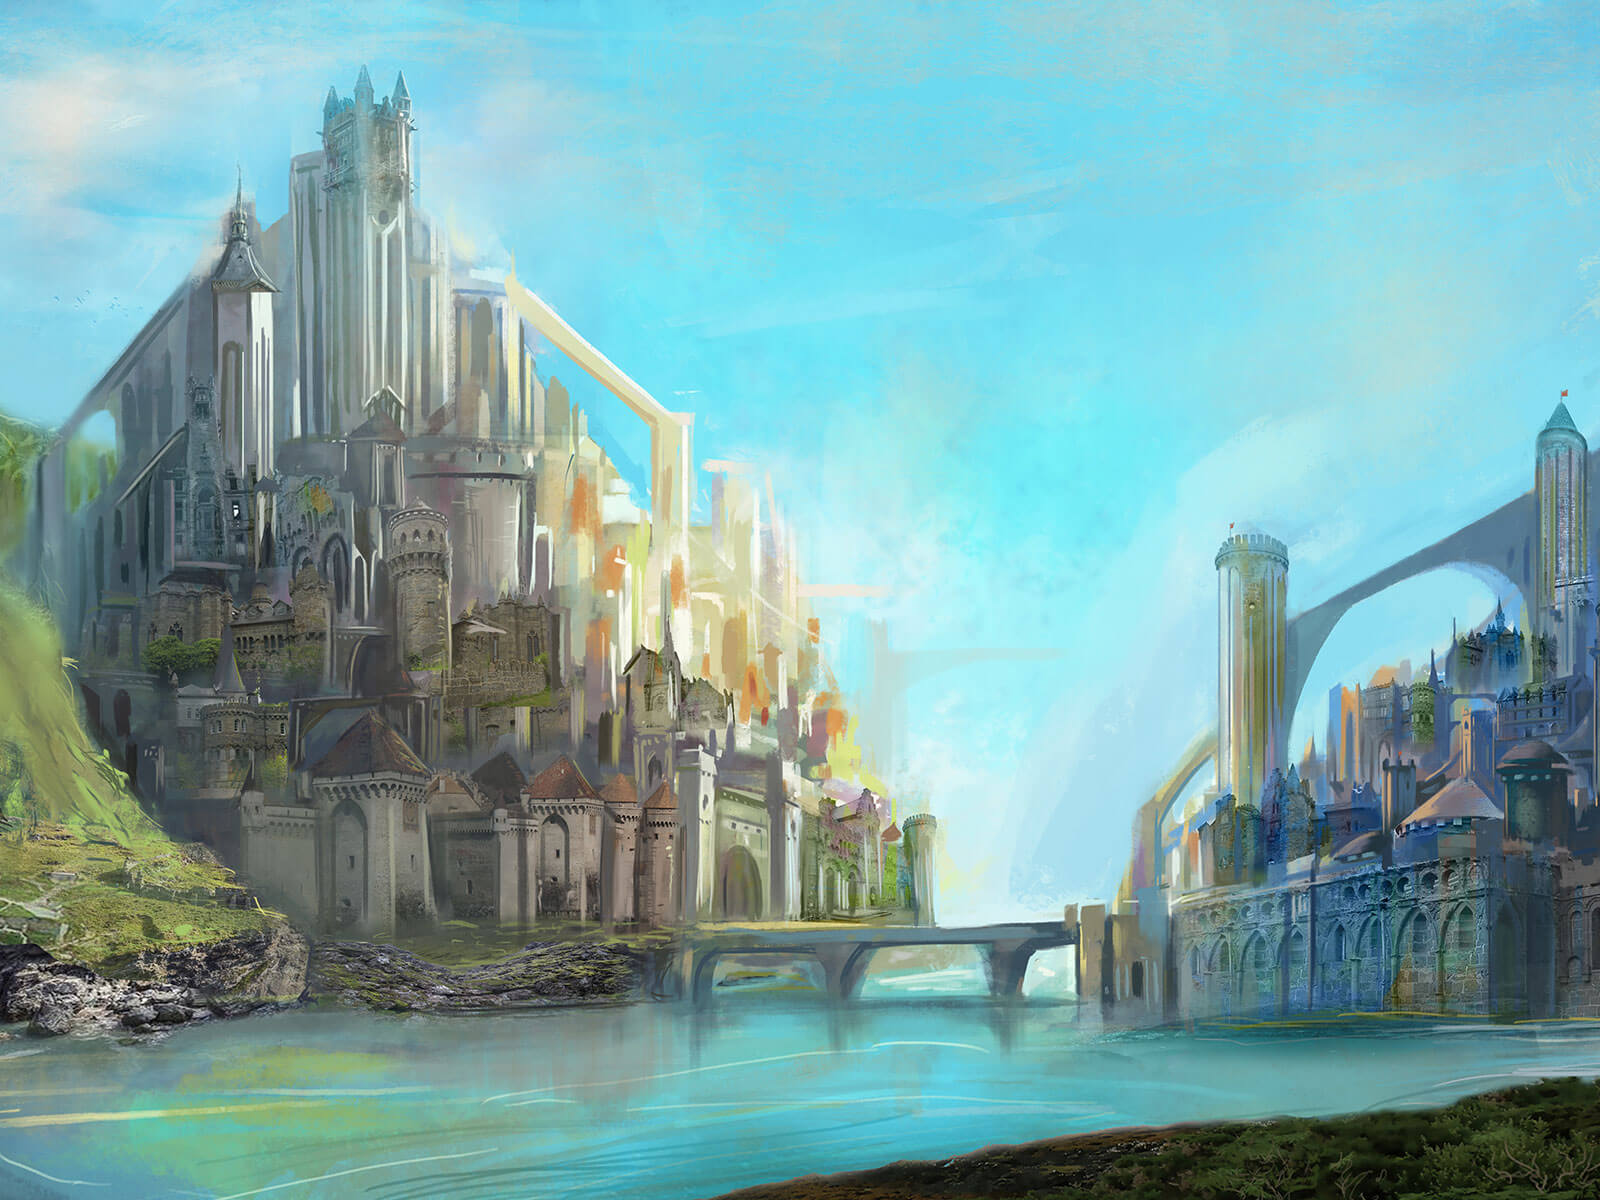 Two high-fantasy-style cities are connected by a single bridge across the river separating them.